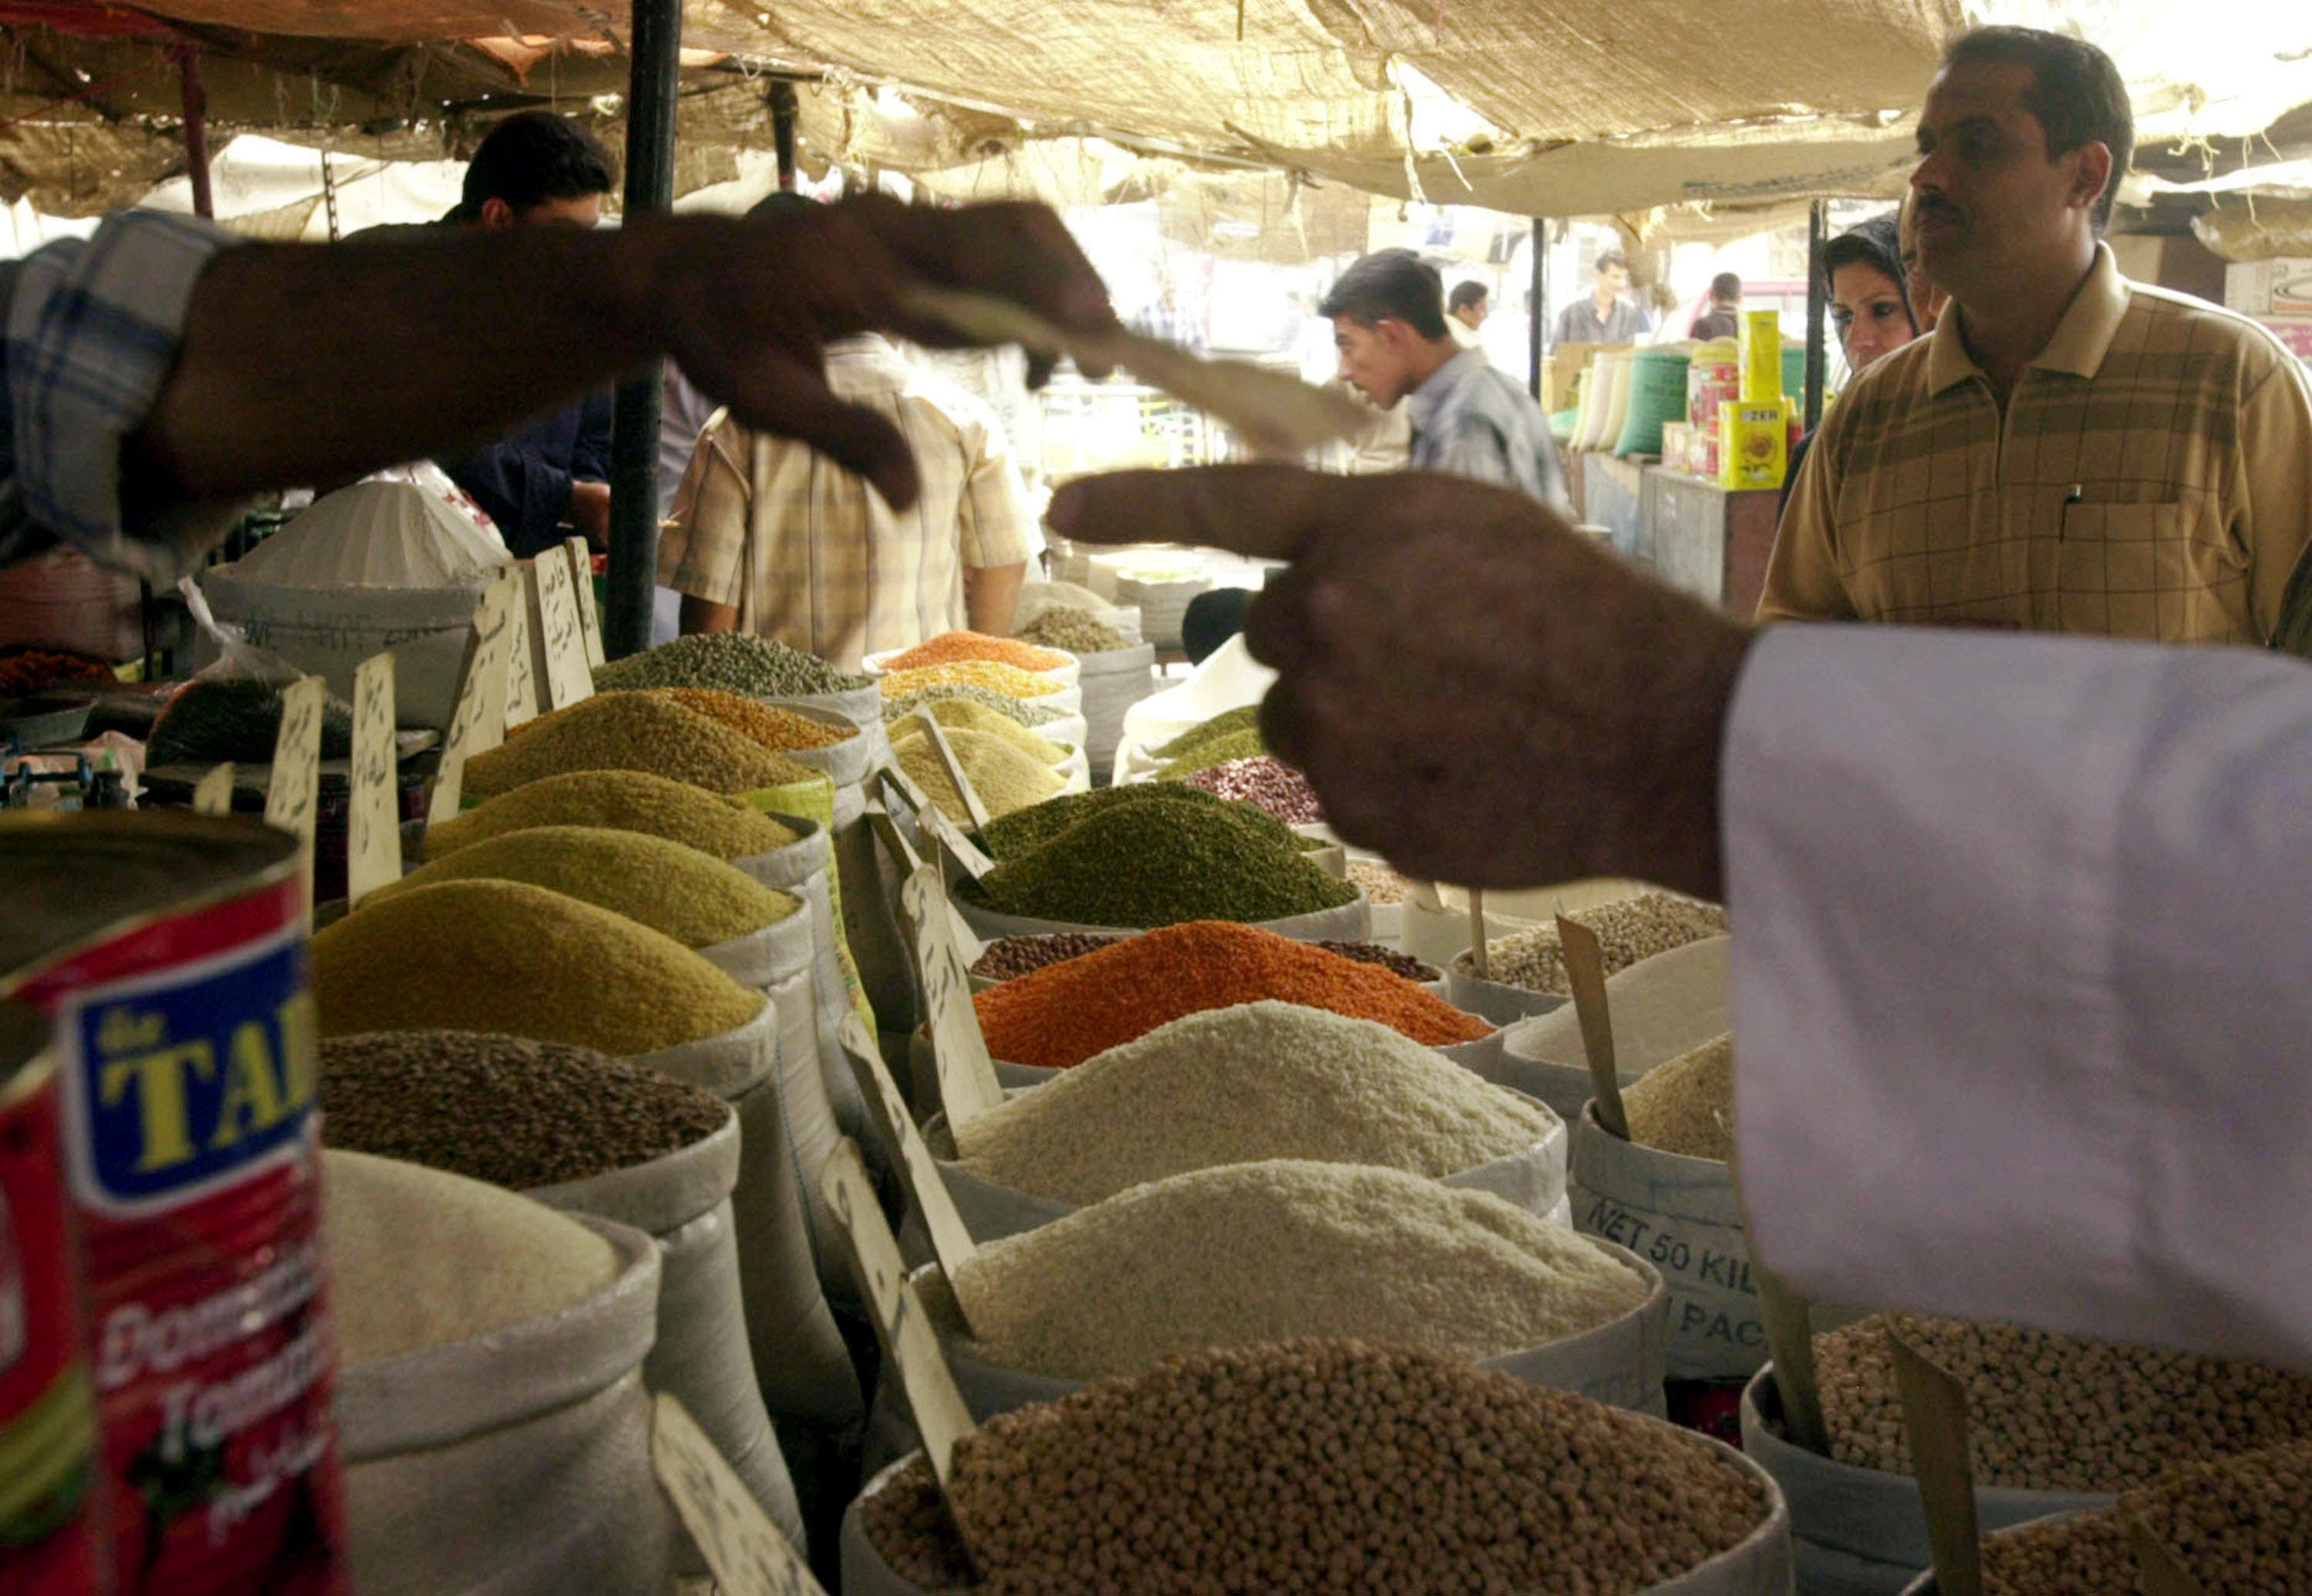 Restricting the diet  to no animal products is Lent one form for  fasting. Grains and spices and cakes made with orange substituting for milk or eggs, all commonly consumed in the Middle East at Lent.